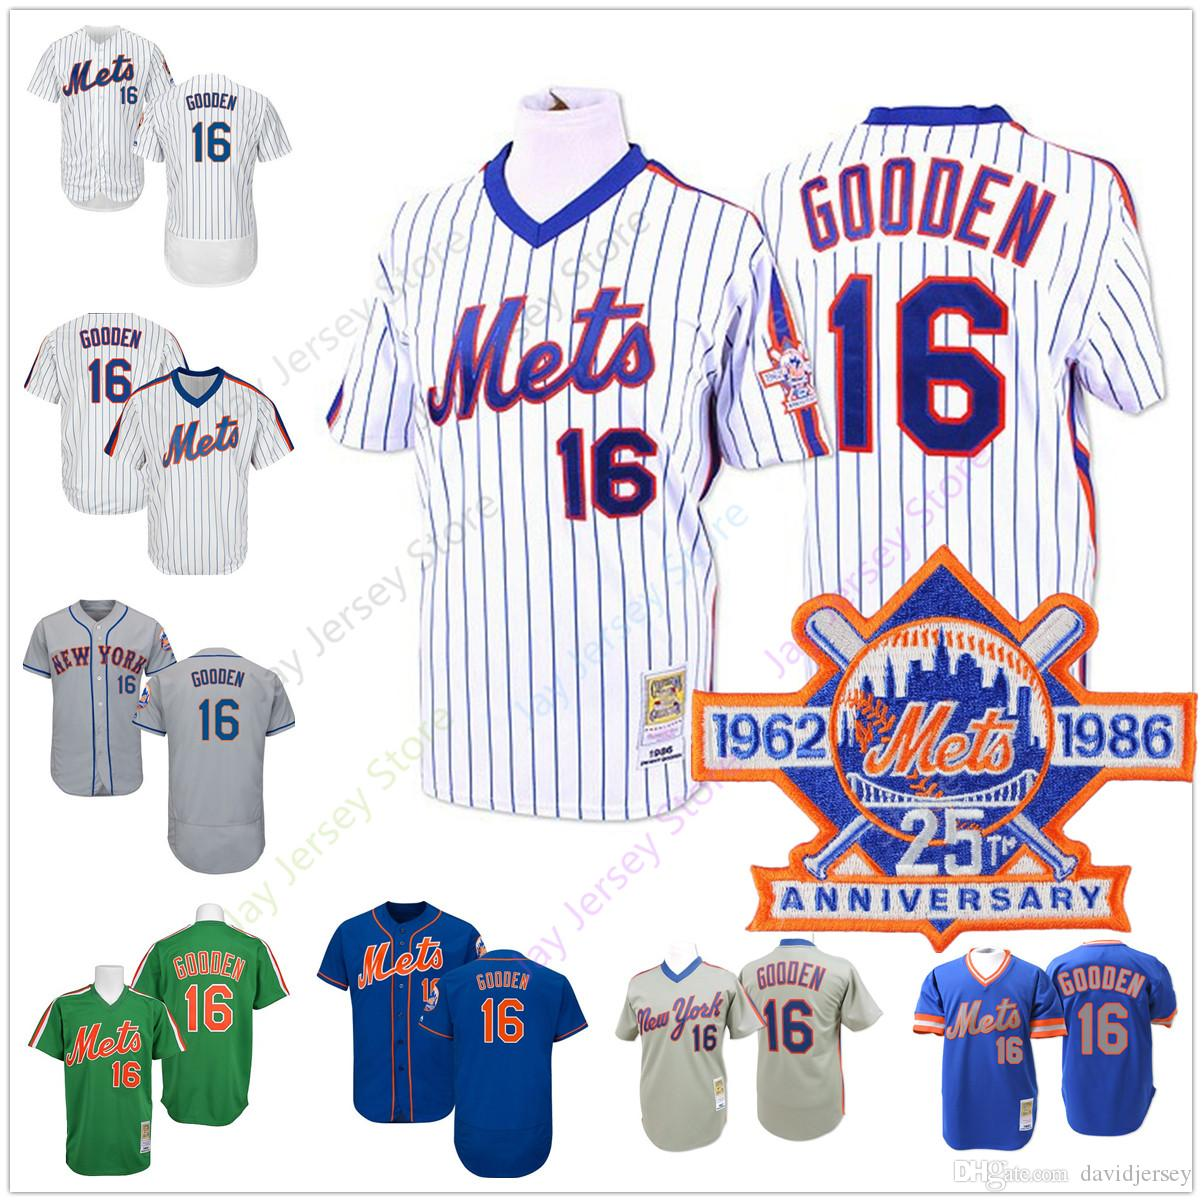 low priced d9213 69394 Dwight Gooden Mets Jersey Cooperstown Baseball New York Home Away White  Pinstripe Blue Men Women Youth Kid